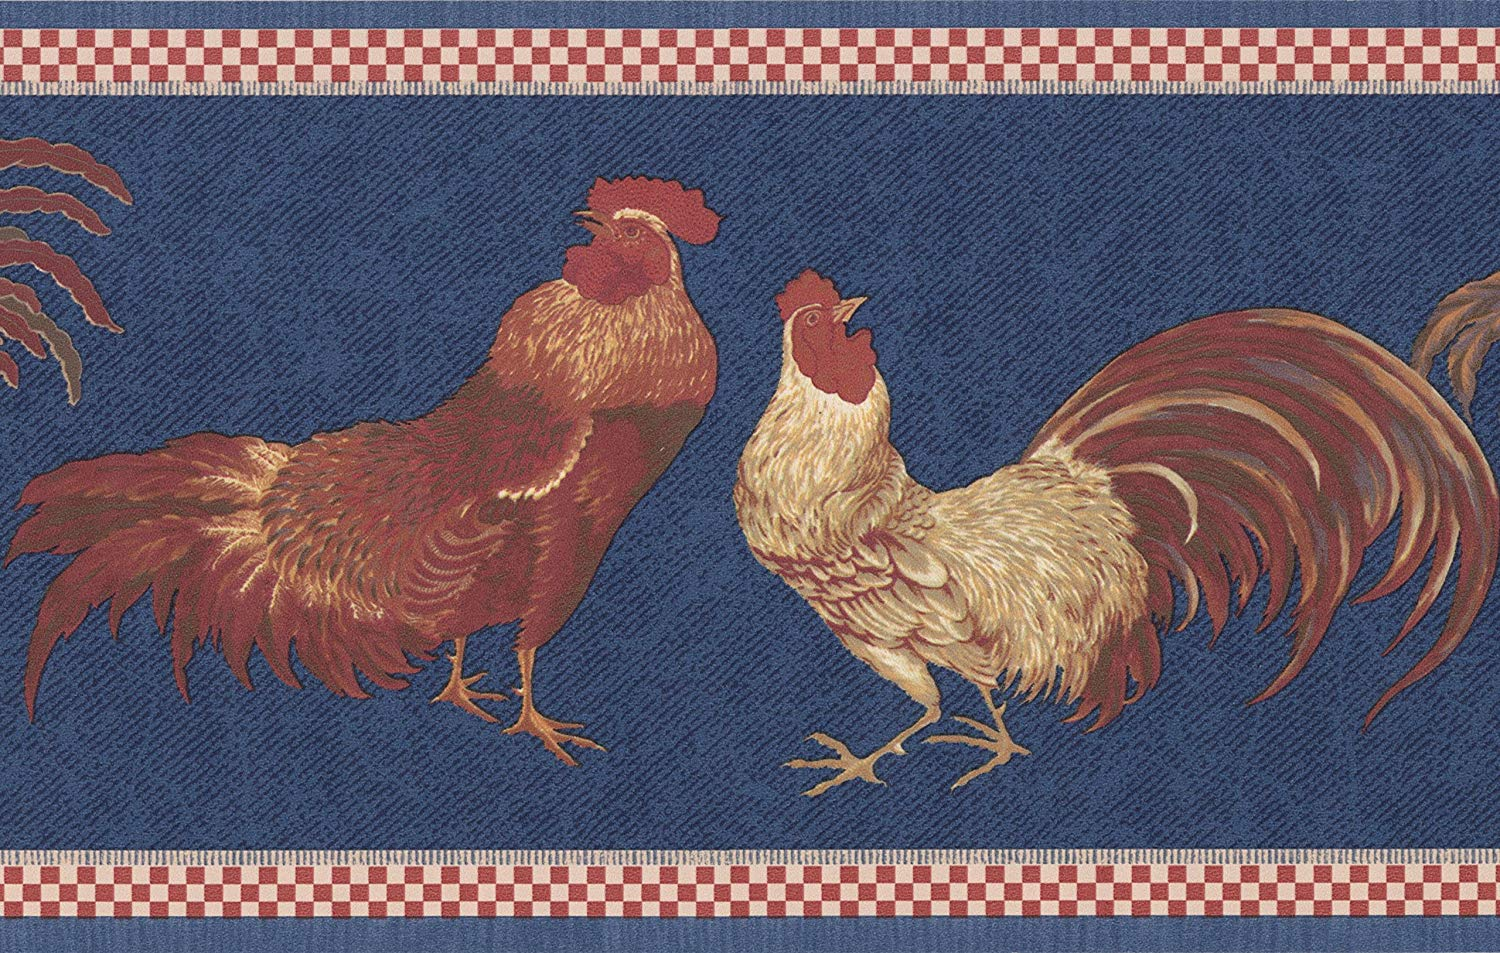 Beige Red Rooster Blue Wallpaper Border Retro Design Roll 15 x 7 1500x953